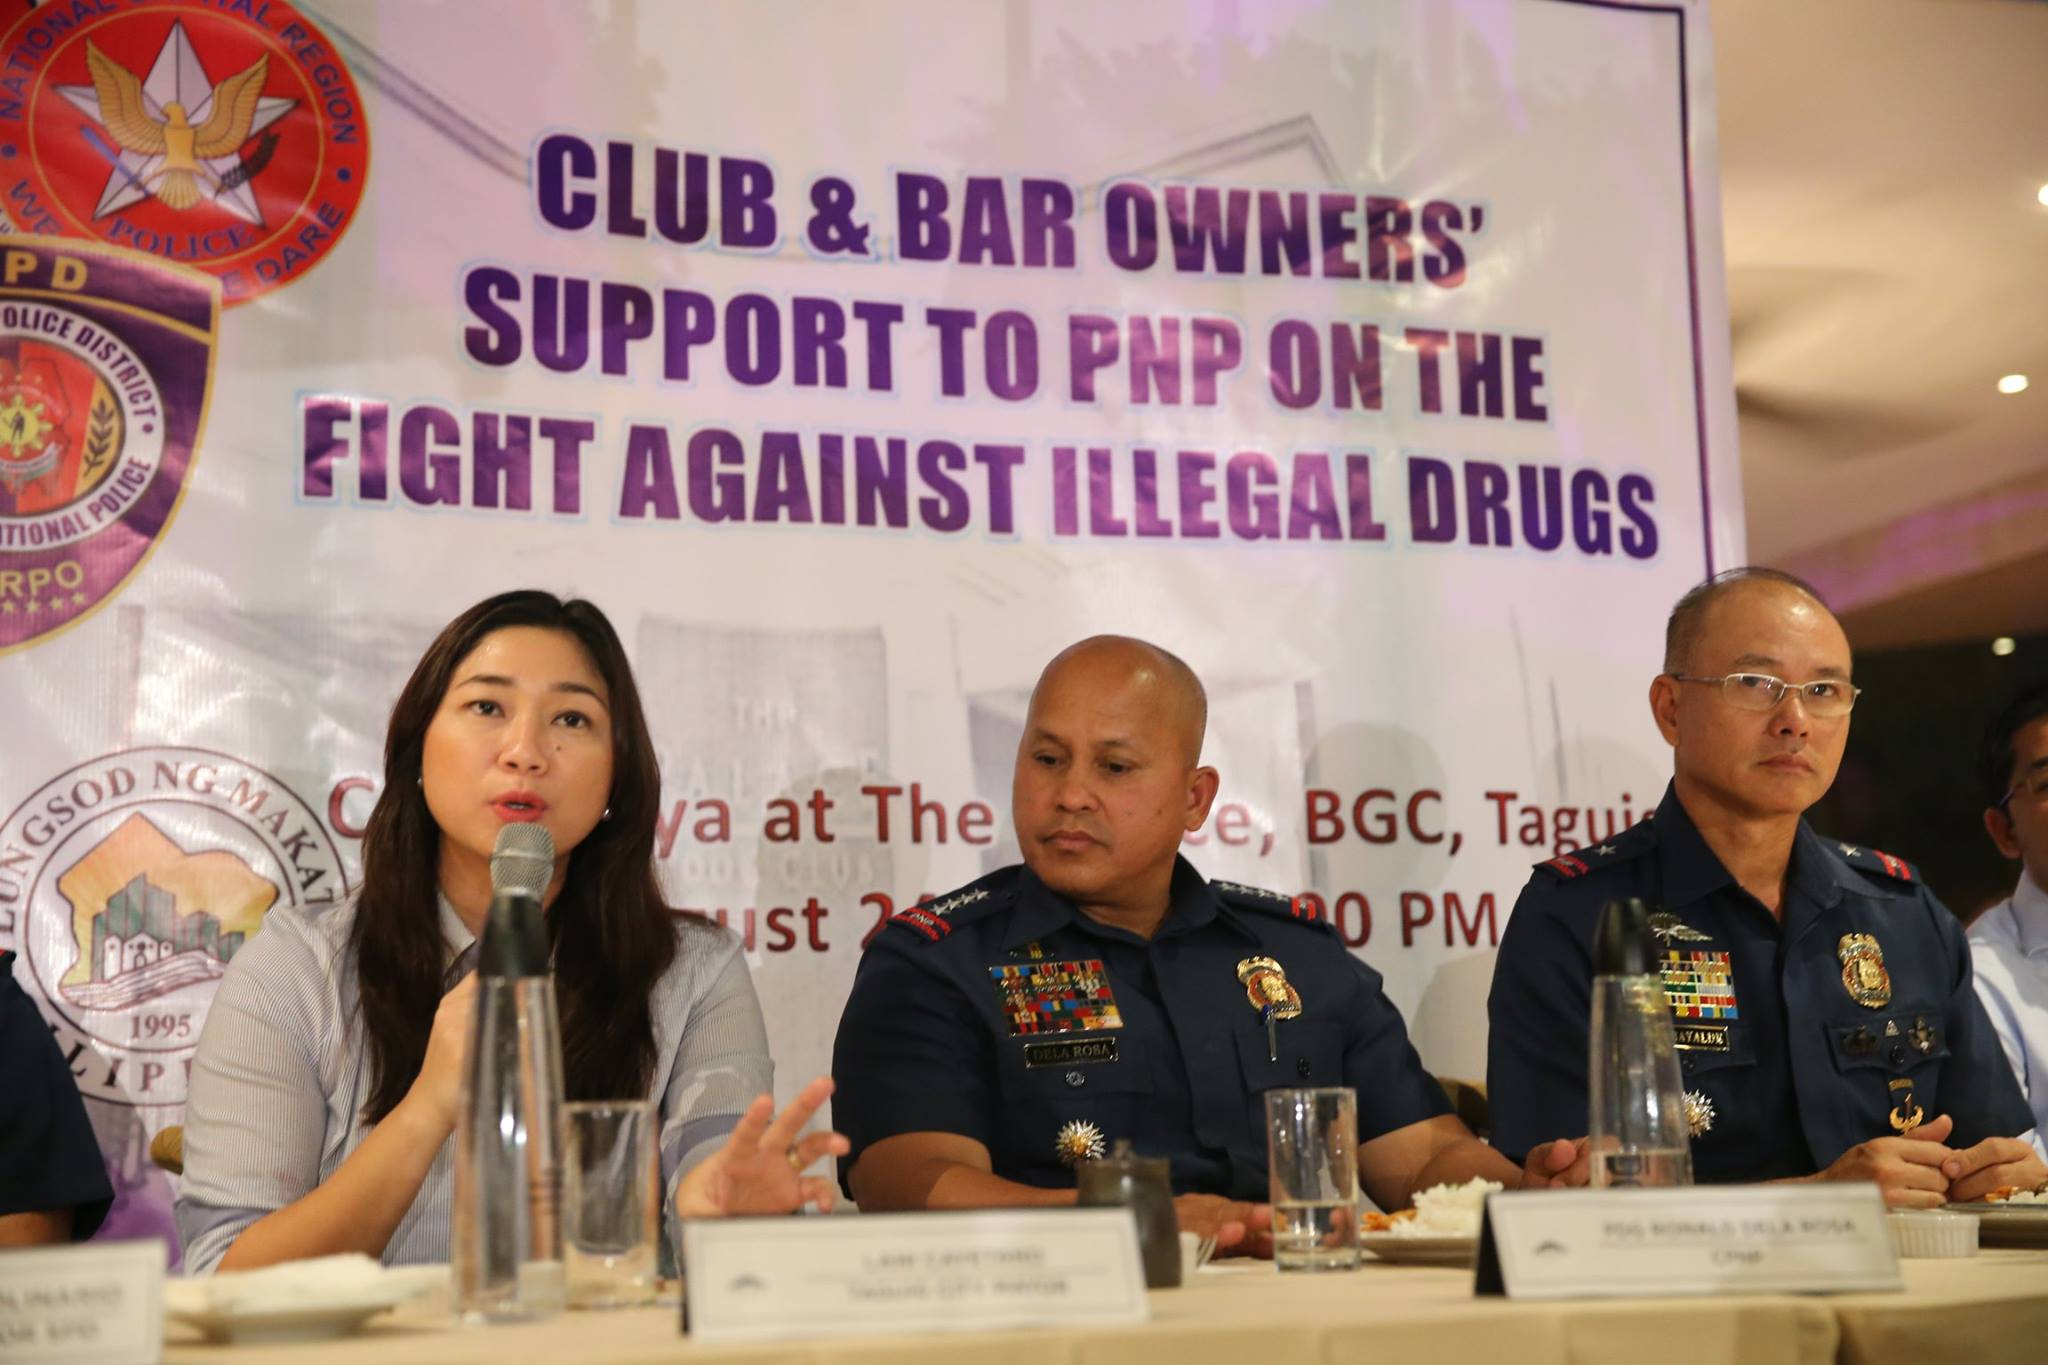 Club and bar owners pledged their support to the PNP's fight against illegal drugs through an affidavit of undertaking yesterday in Taguig City. (Photo: PNP-PIO)